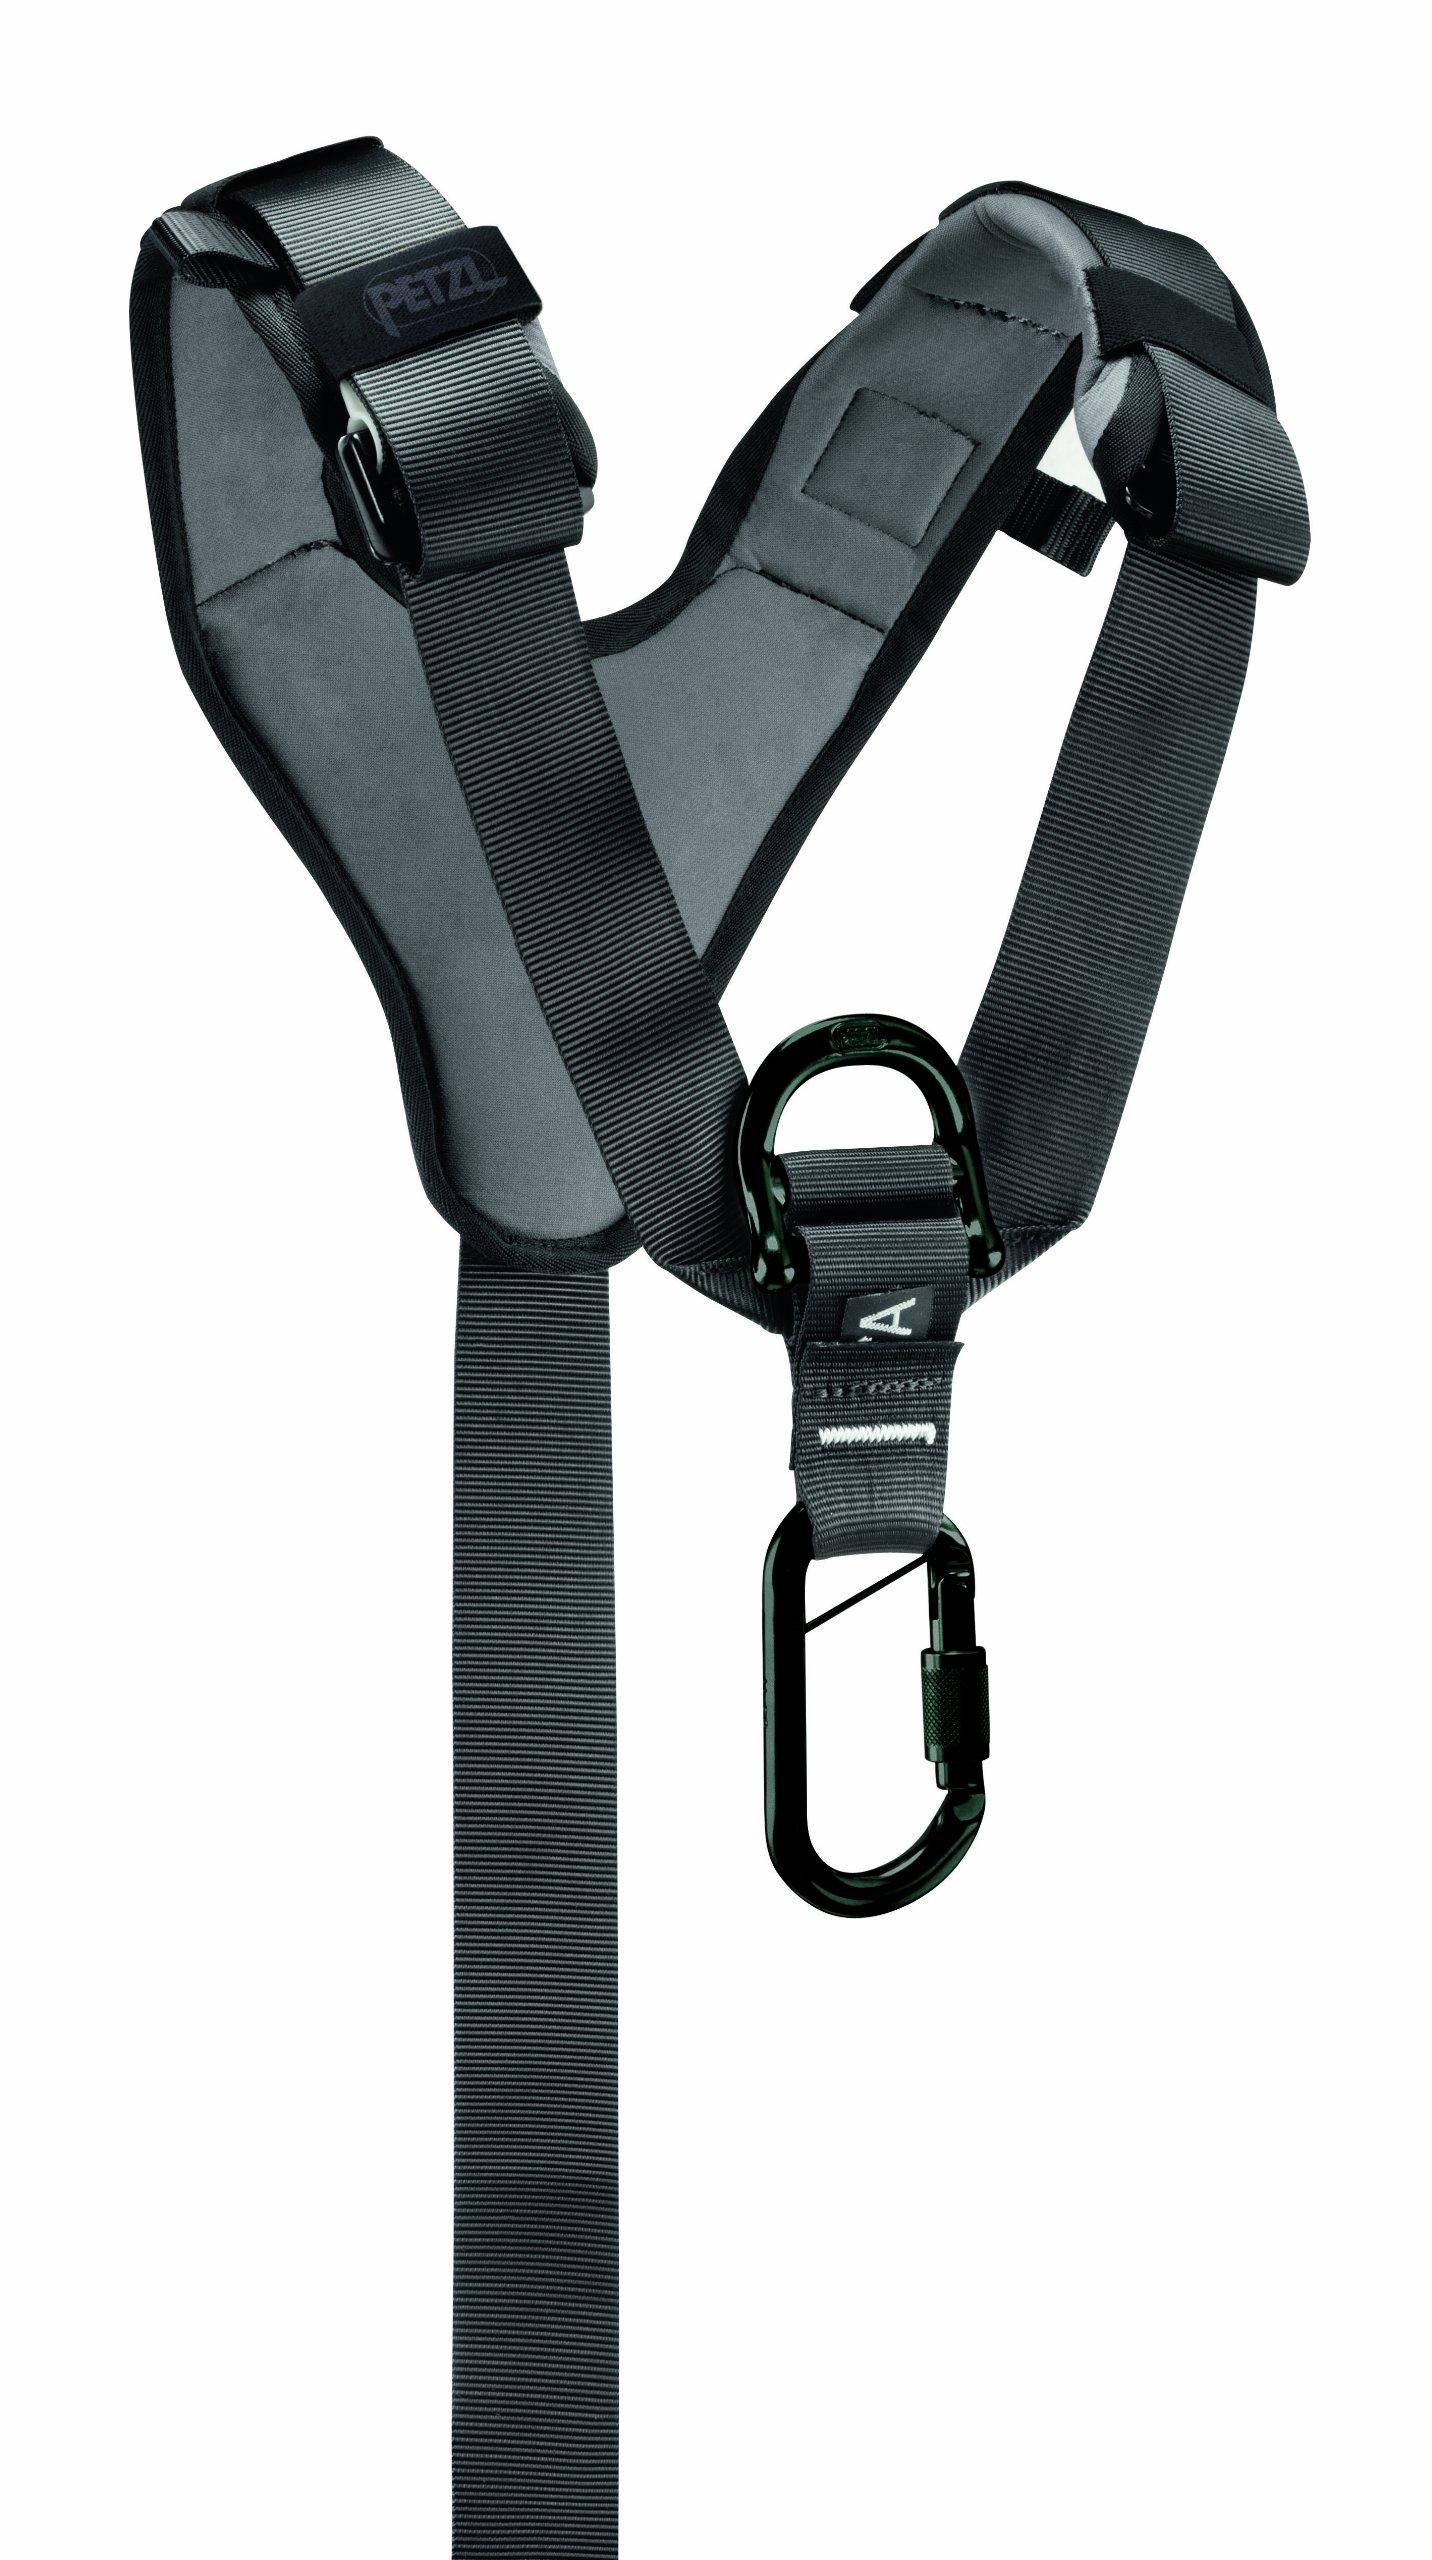 PETZL - TOP Croll, Chest Harness for Seat Harness